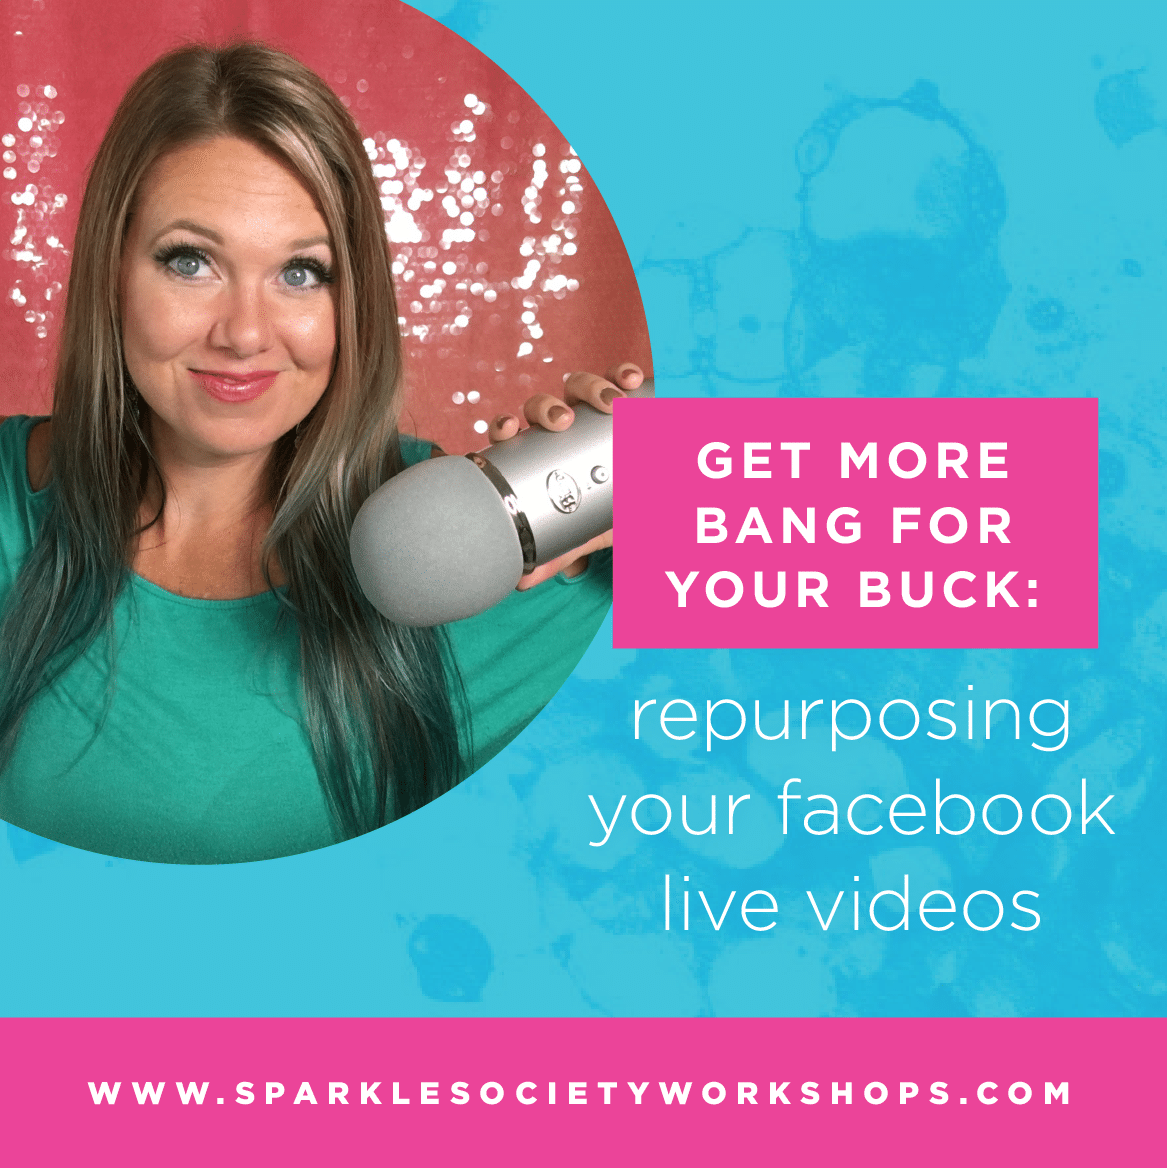 repurpose live video